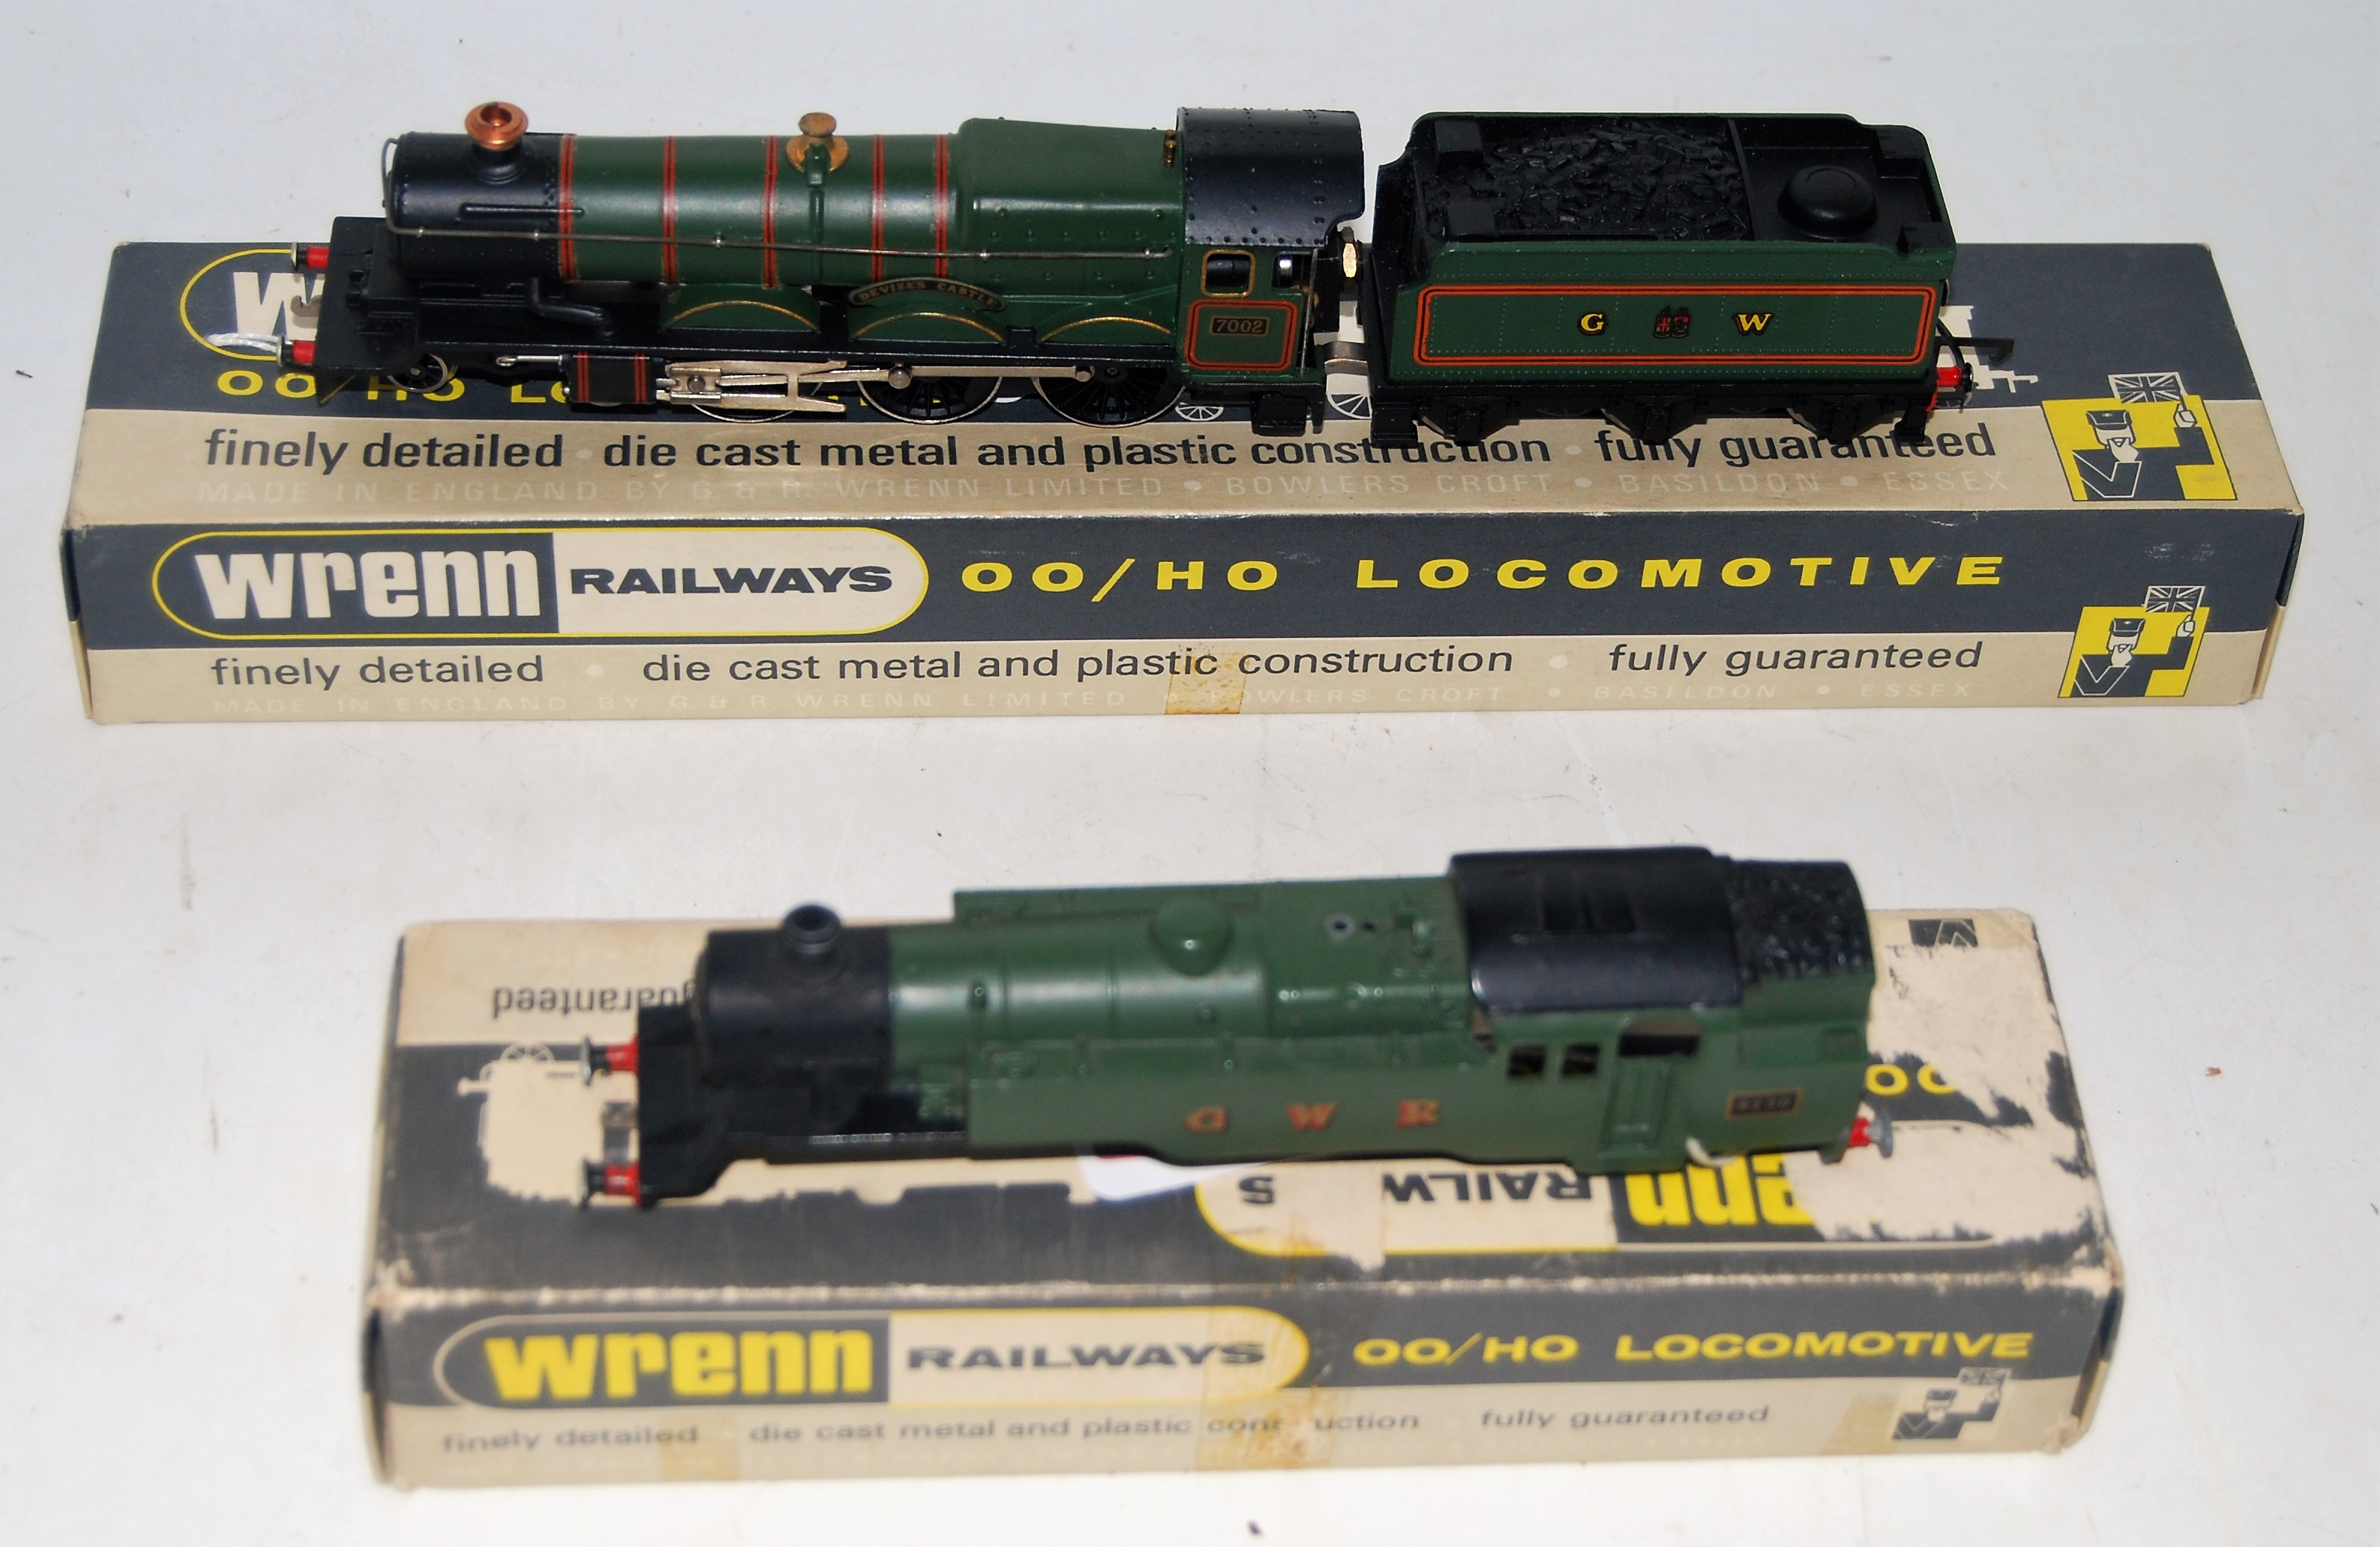 Lot 648 - Wrenn W2222 GW Devizes Castle loco and tender, with instructions, some corrosion to handrails (G-